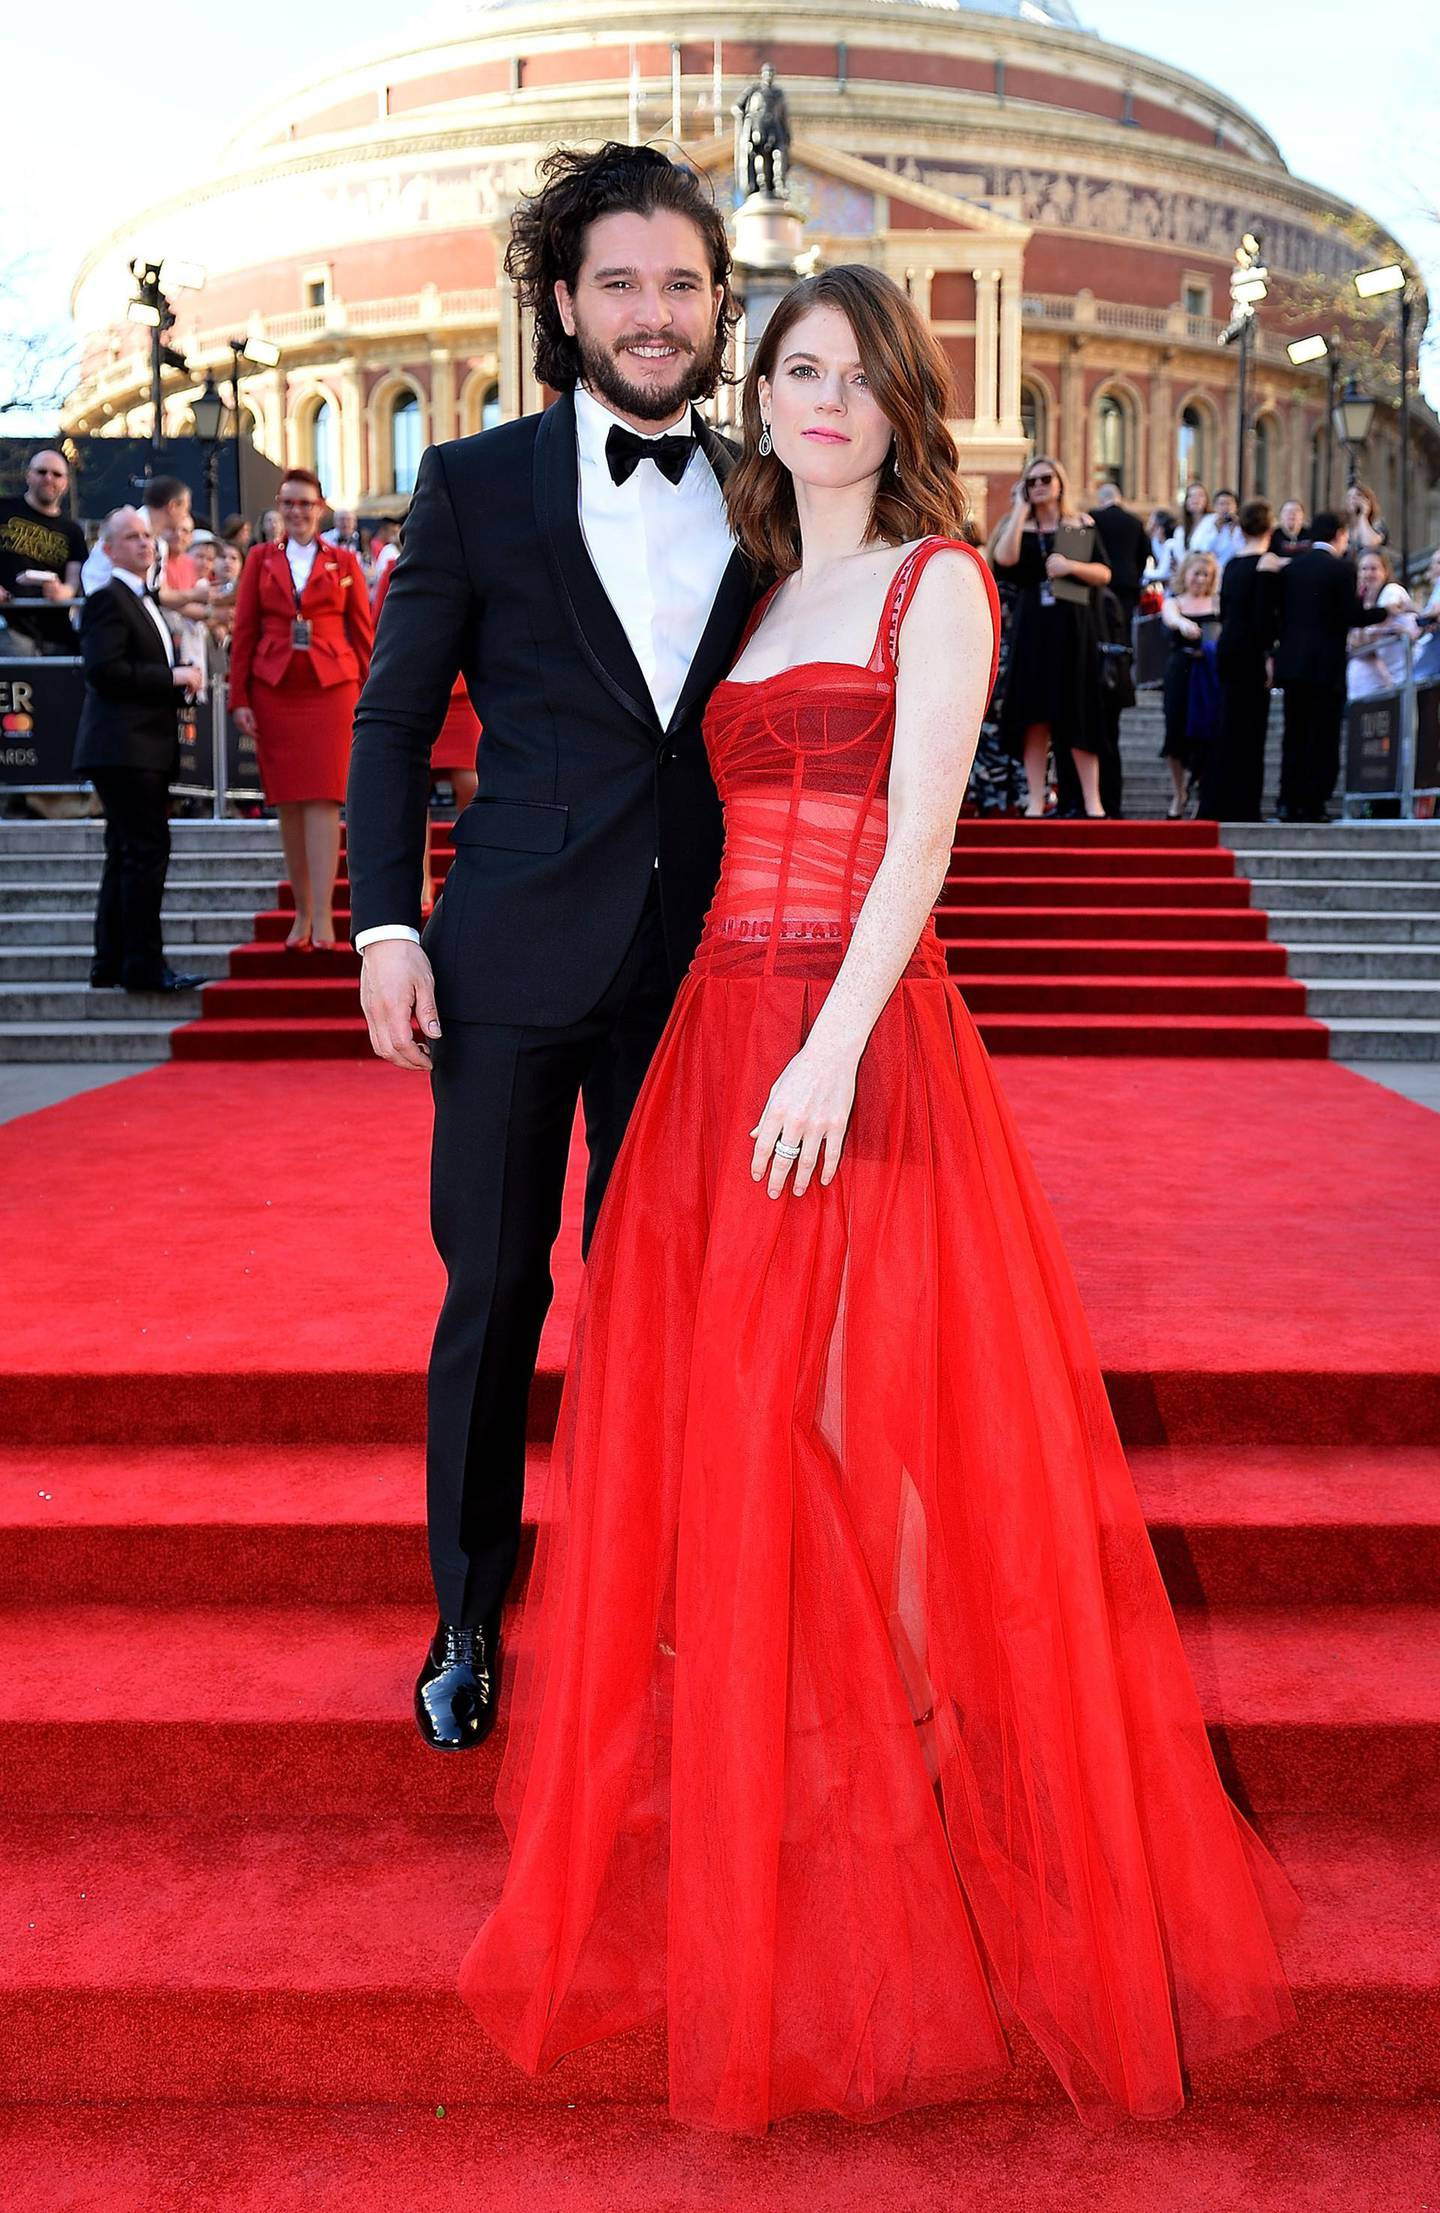 FILE - FEBRUARY 16: Actors Kit Harington and Rose Leslie have welcomed their first child. LONDON, ENGLAND - APRIL 09:  Rose Leslie and Kit Harington attend The Olivier Awards 2017 at Royal Albert Hall on April 9, 2017 in London, England.  (Photo by Jeff Spicer/Getty Images)